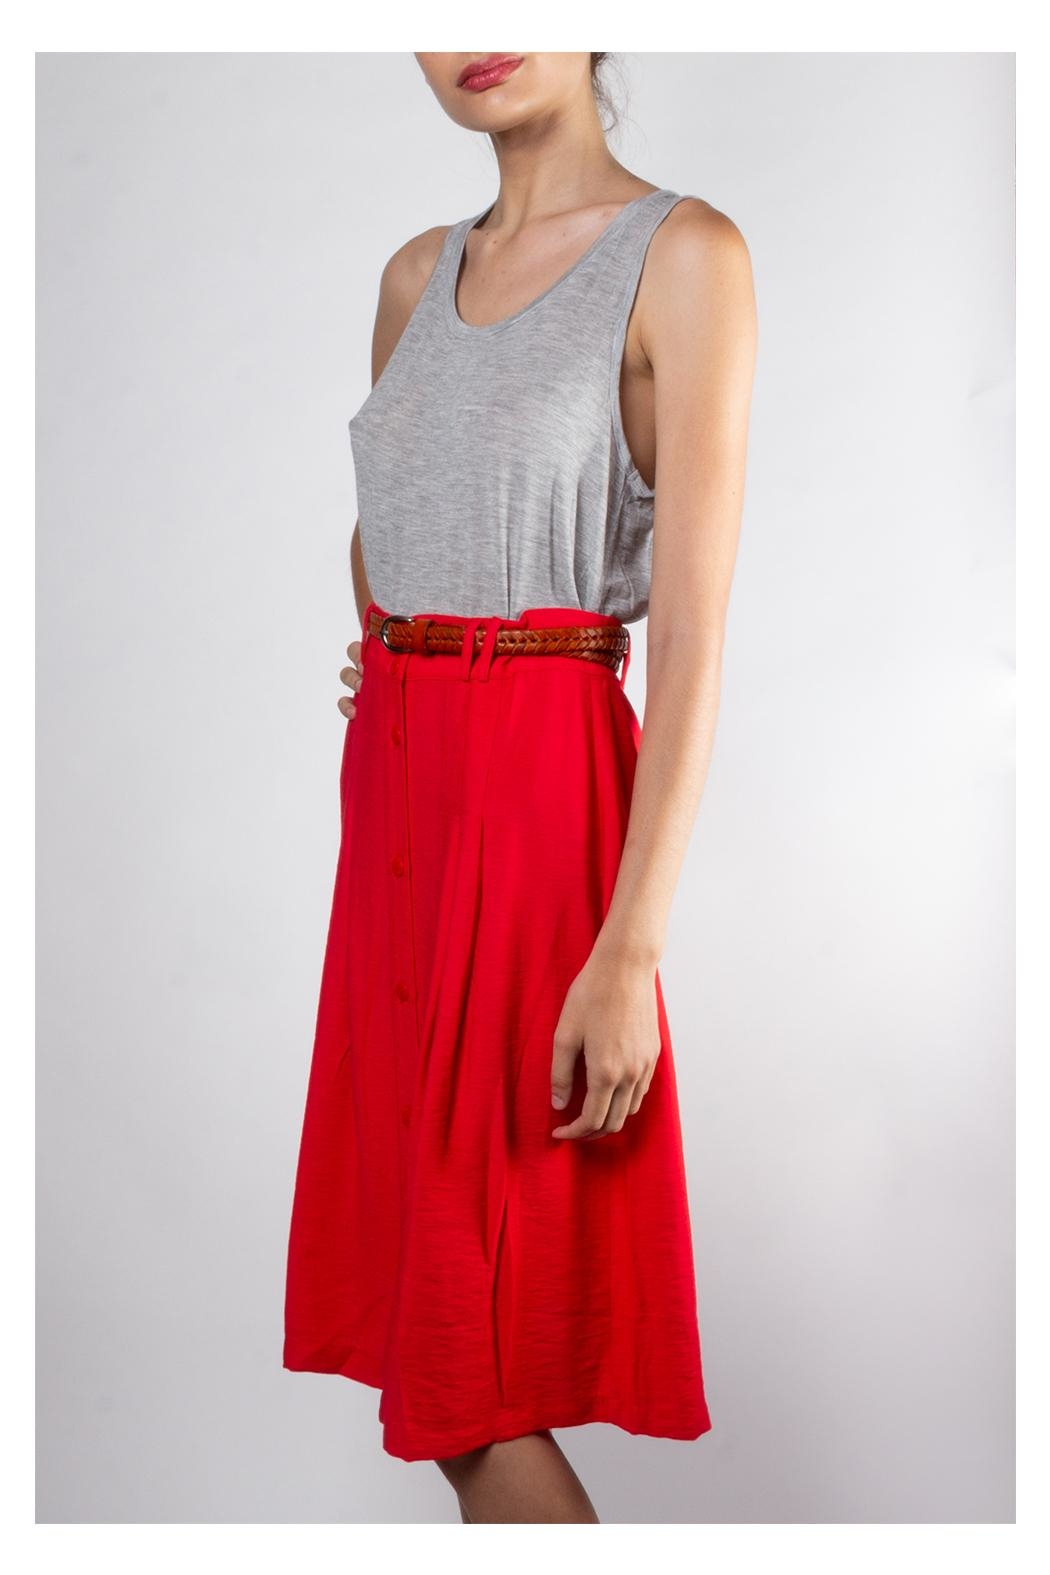 Lumiere Vintage Button-Front Skirt - Side Cropped Image